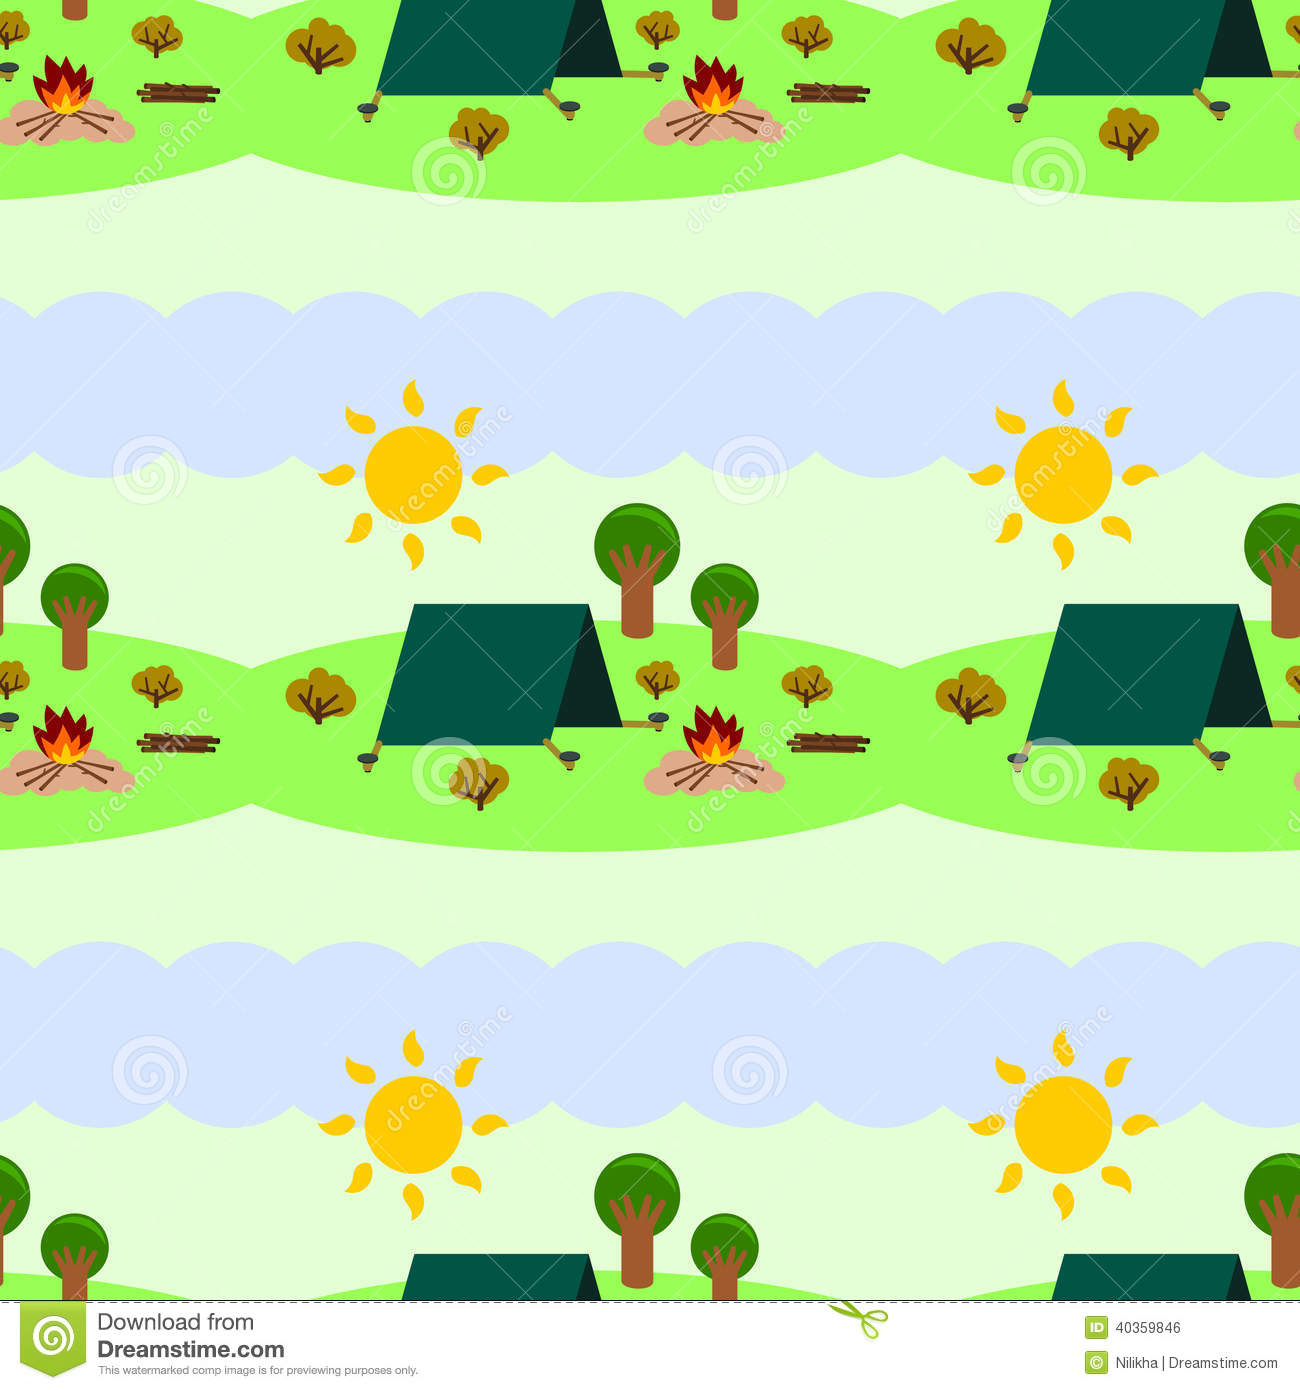 Camping Seamless Background Design